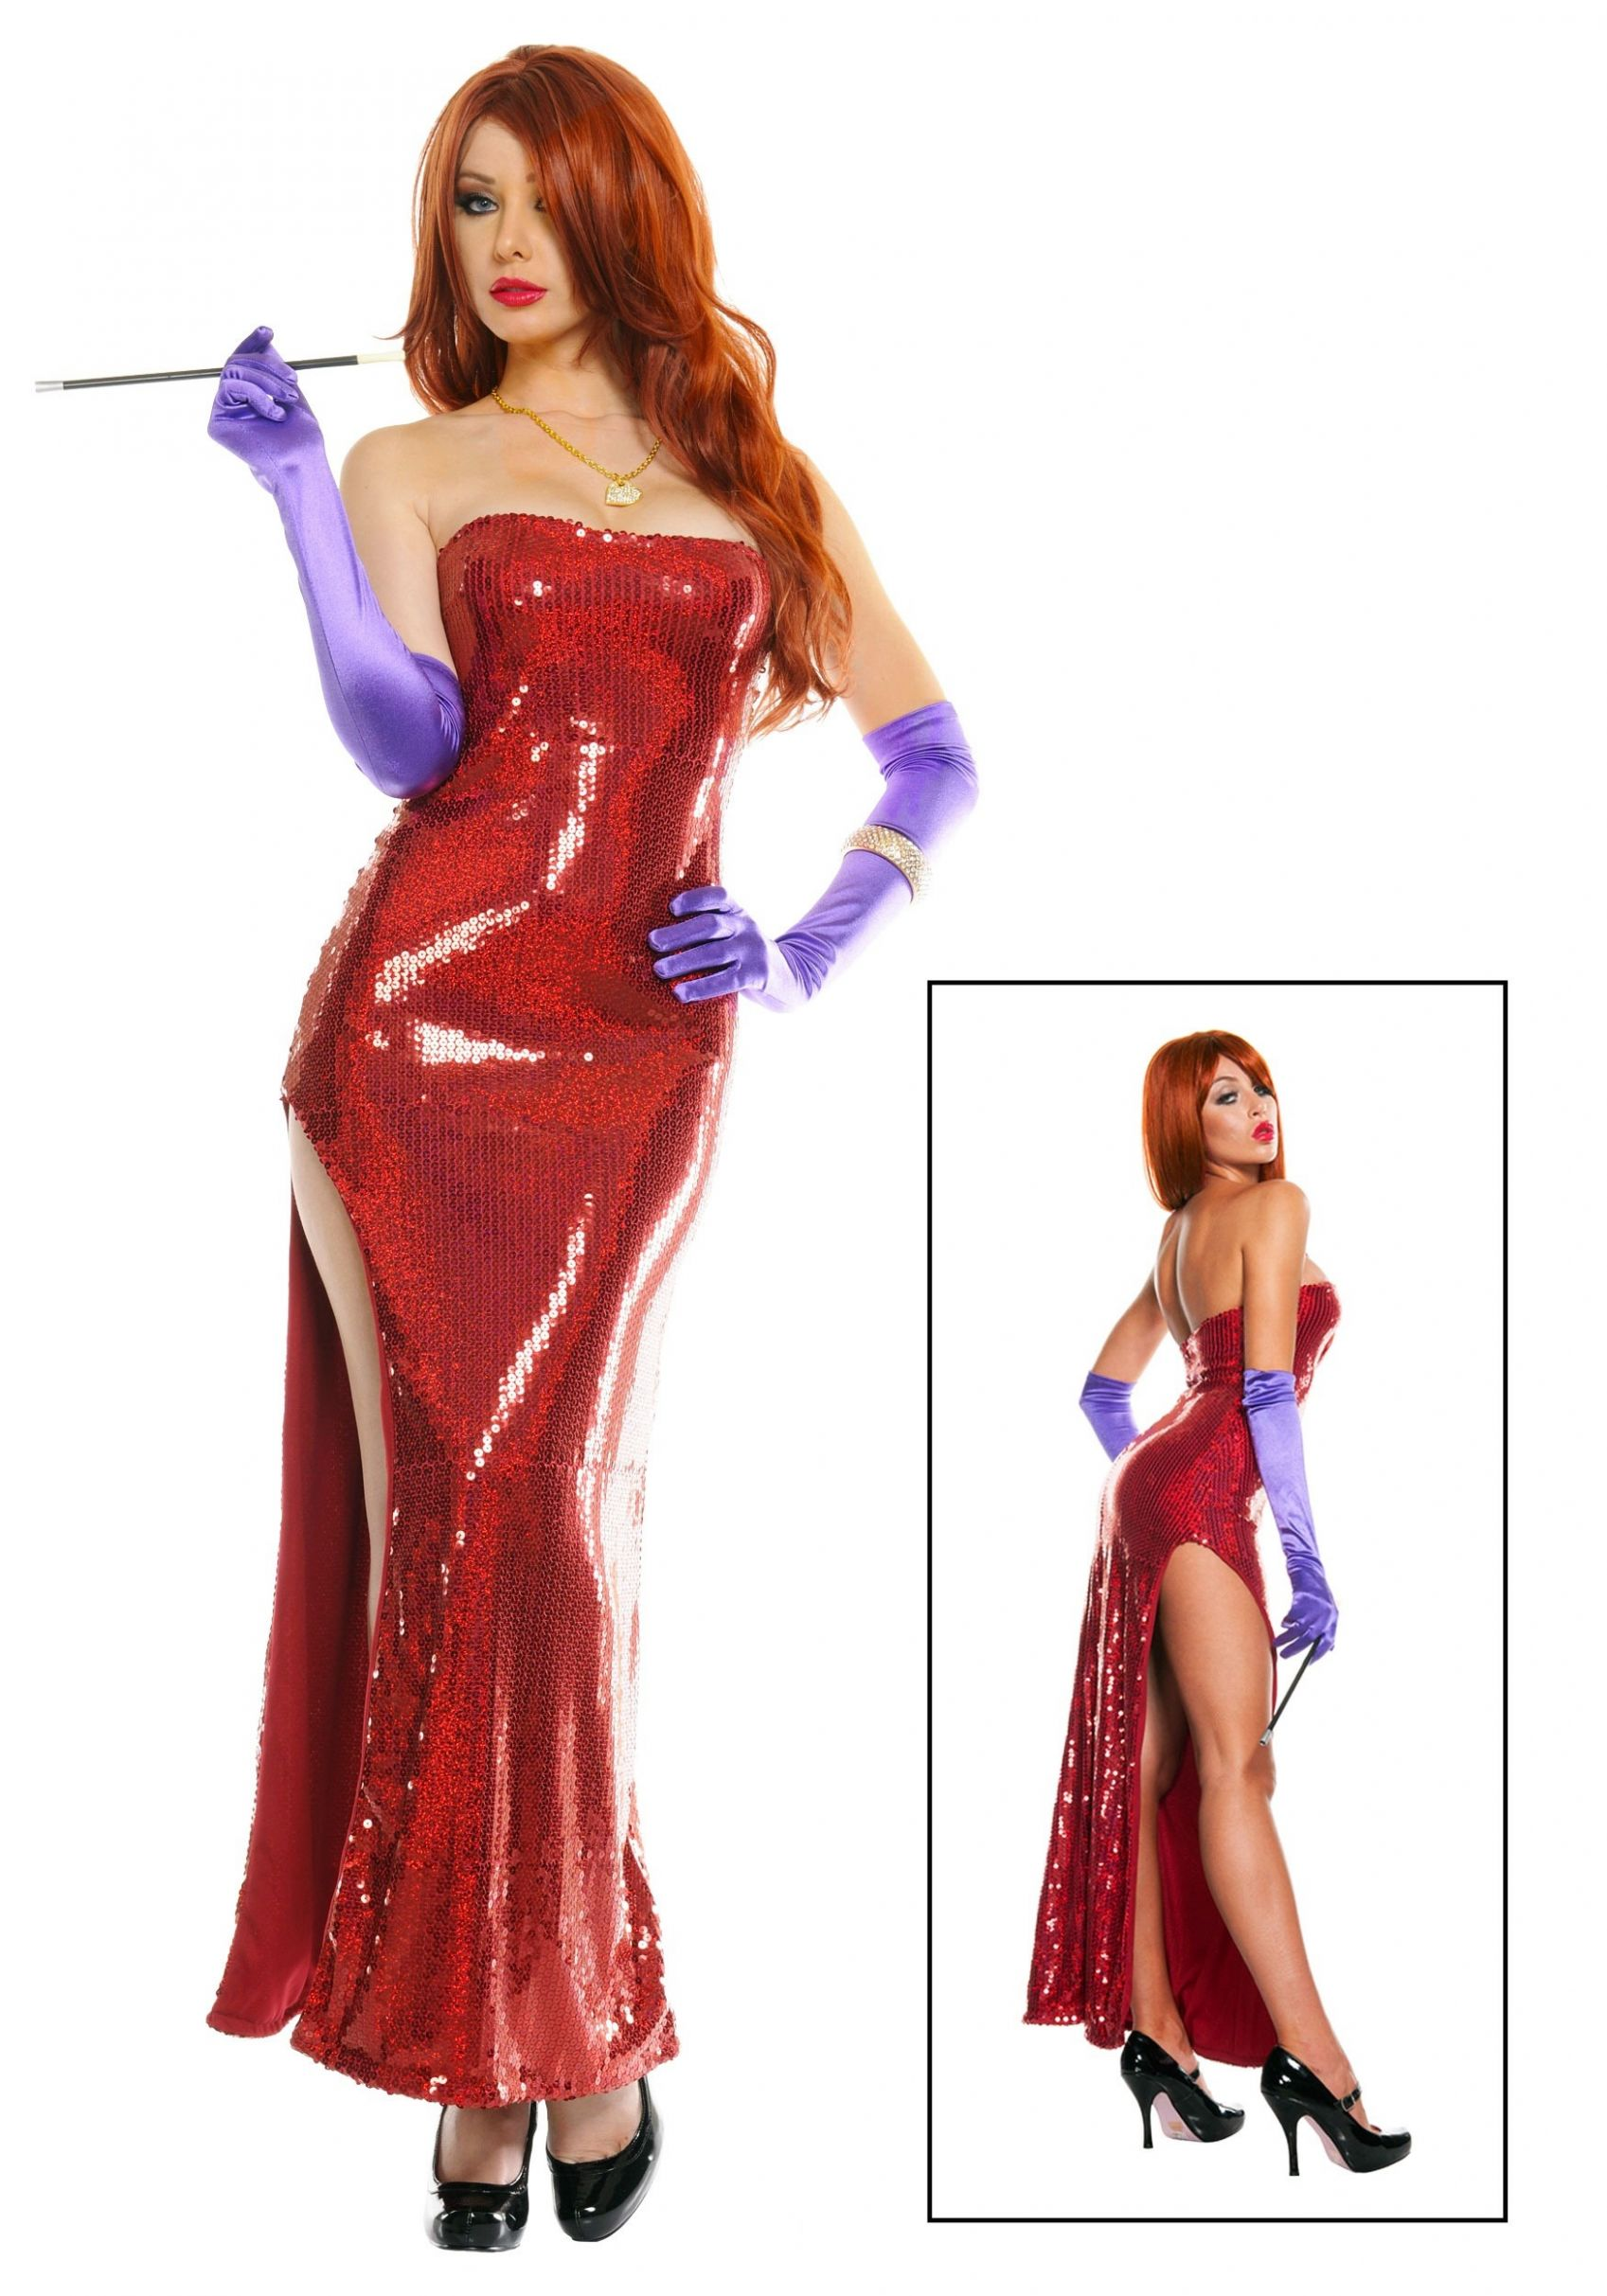 Easy 11 Halloween Costume Ideas For Redheads Because You Have So ..